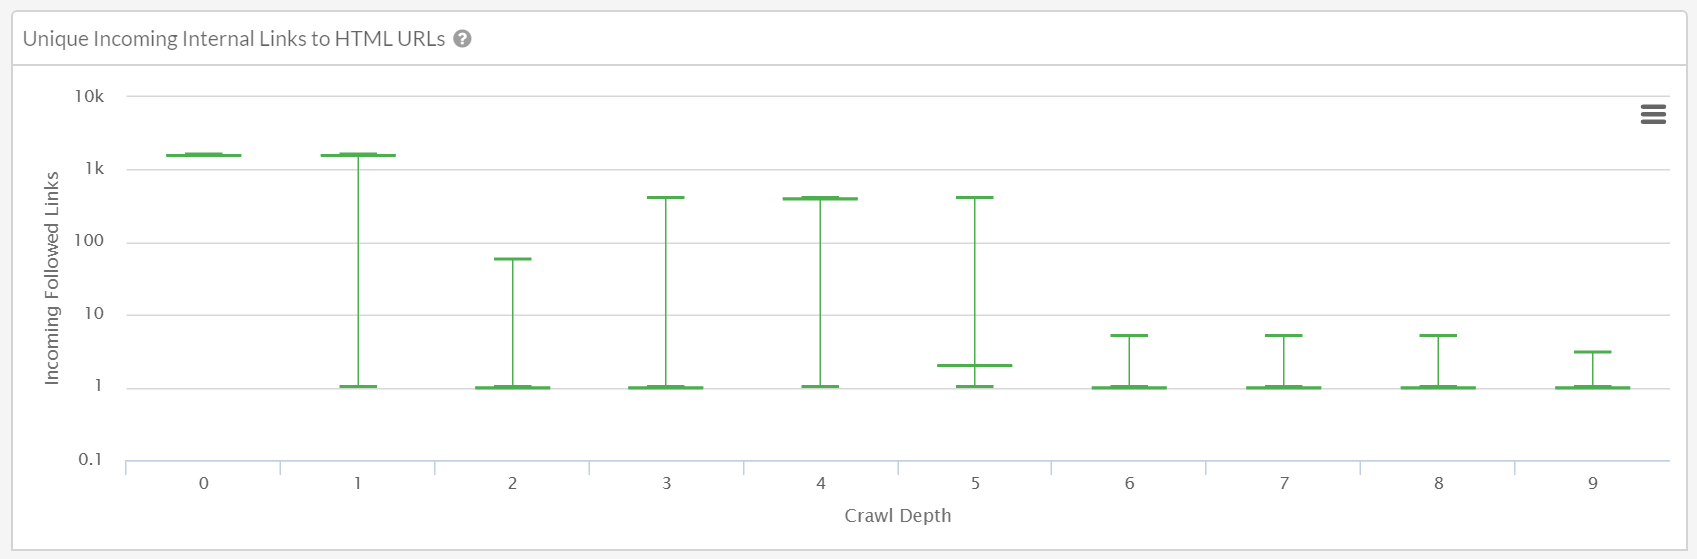 Link distribution averages outliers